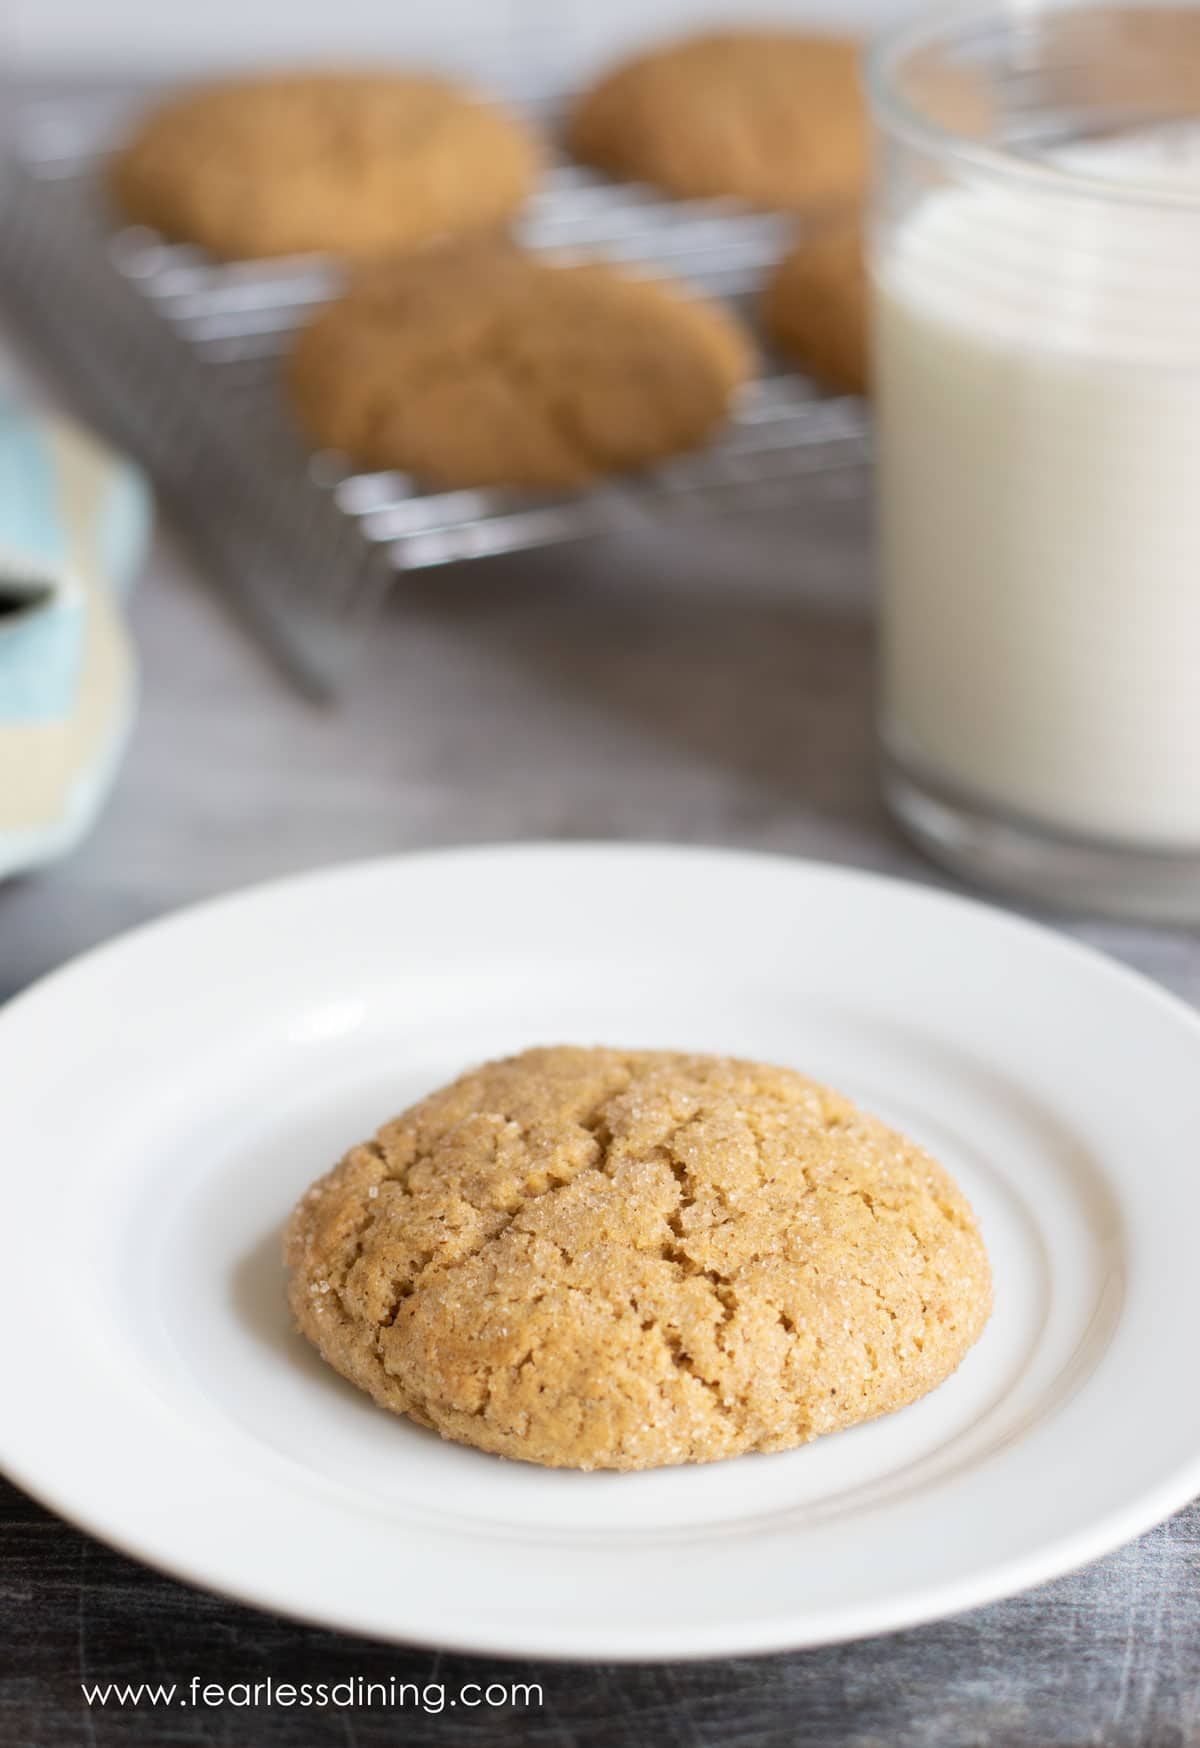 a gluten free pumpkin snickerdoodle cookie on a plate next to a glass of milk